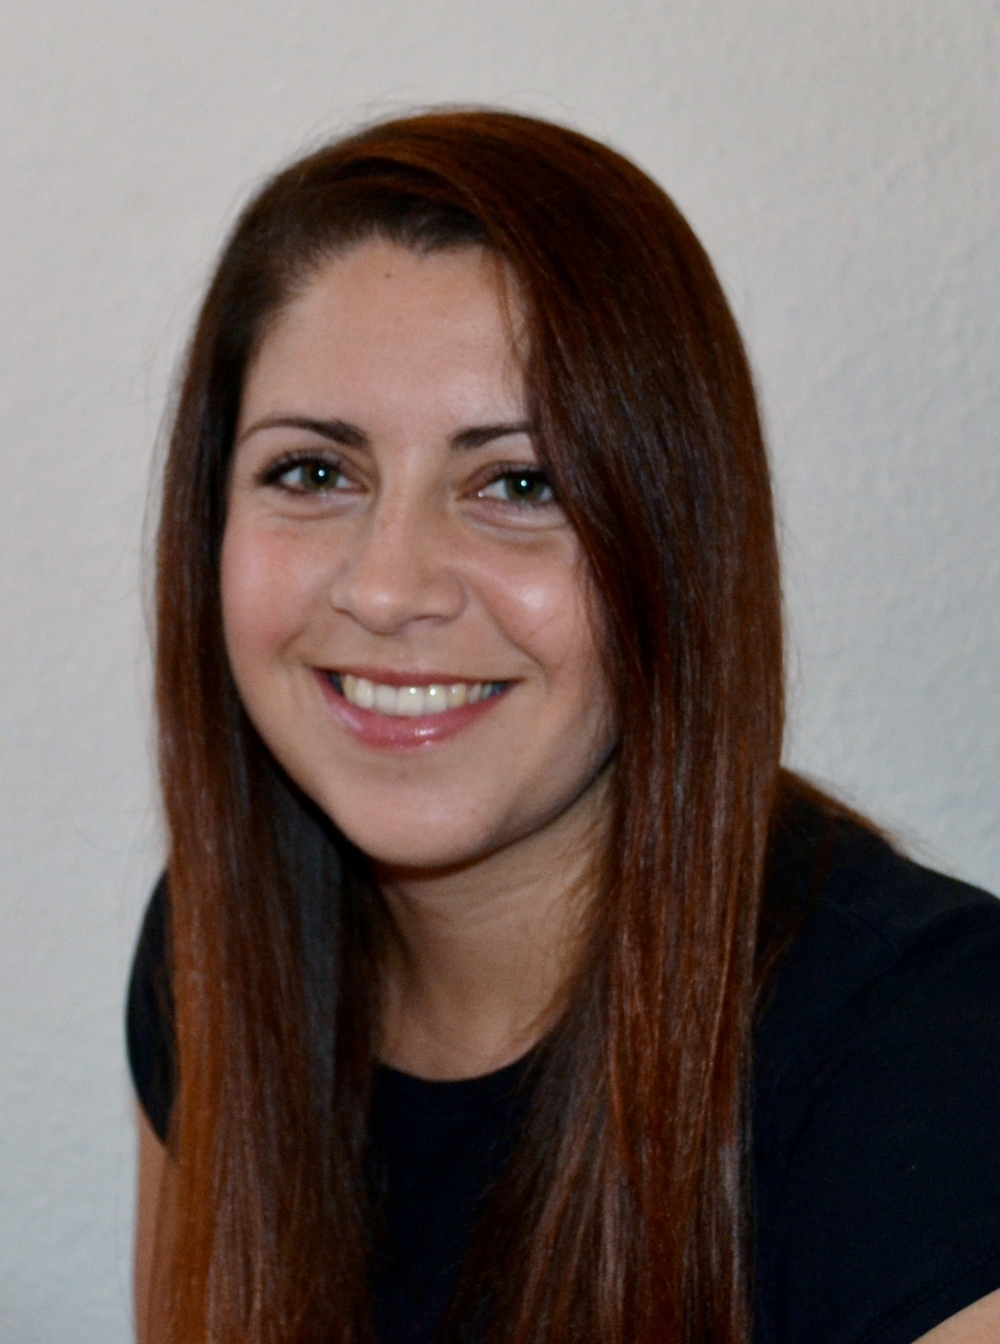 Sarah Dosanjh - Counsellor and Psychotherapist Ealing and Isleworth